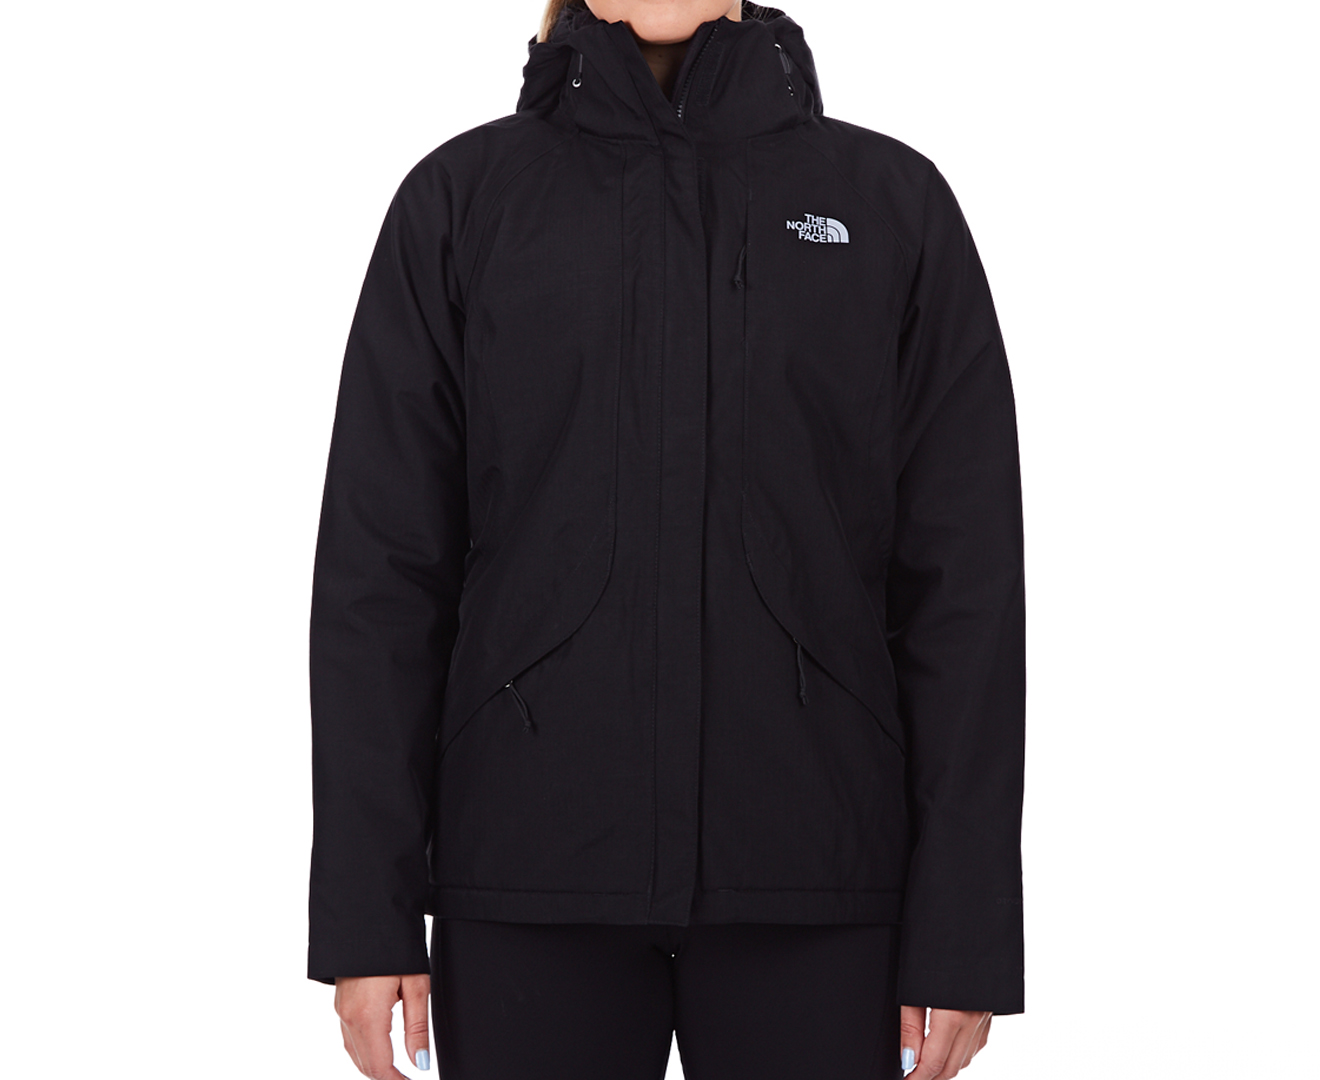 49a190ad0d26 The North Face Women s Inlux Insulated Jacket - TNF Black